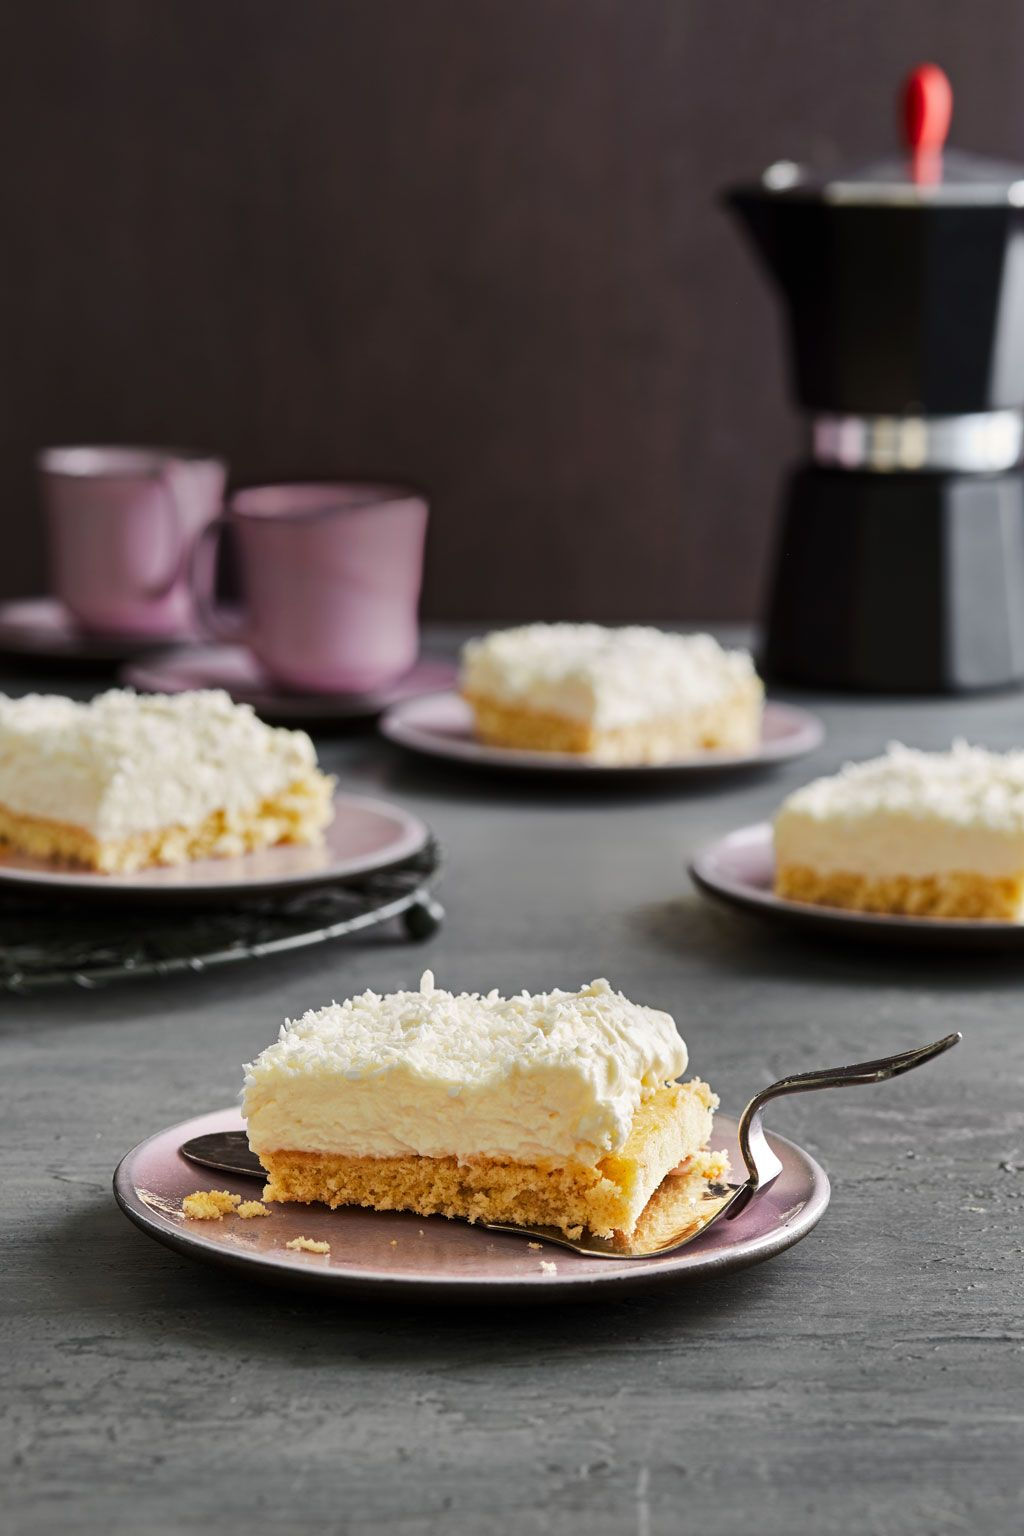 Chefkoch Backen Kuchen Kokostraum Recipes Cheesecake White Chocolate Cheesecake Und